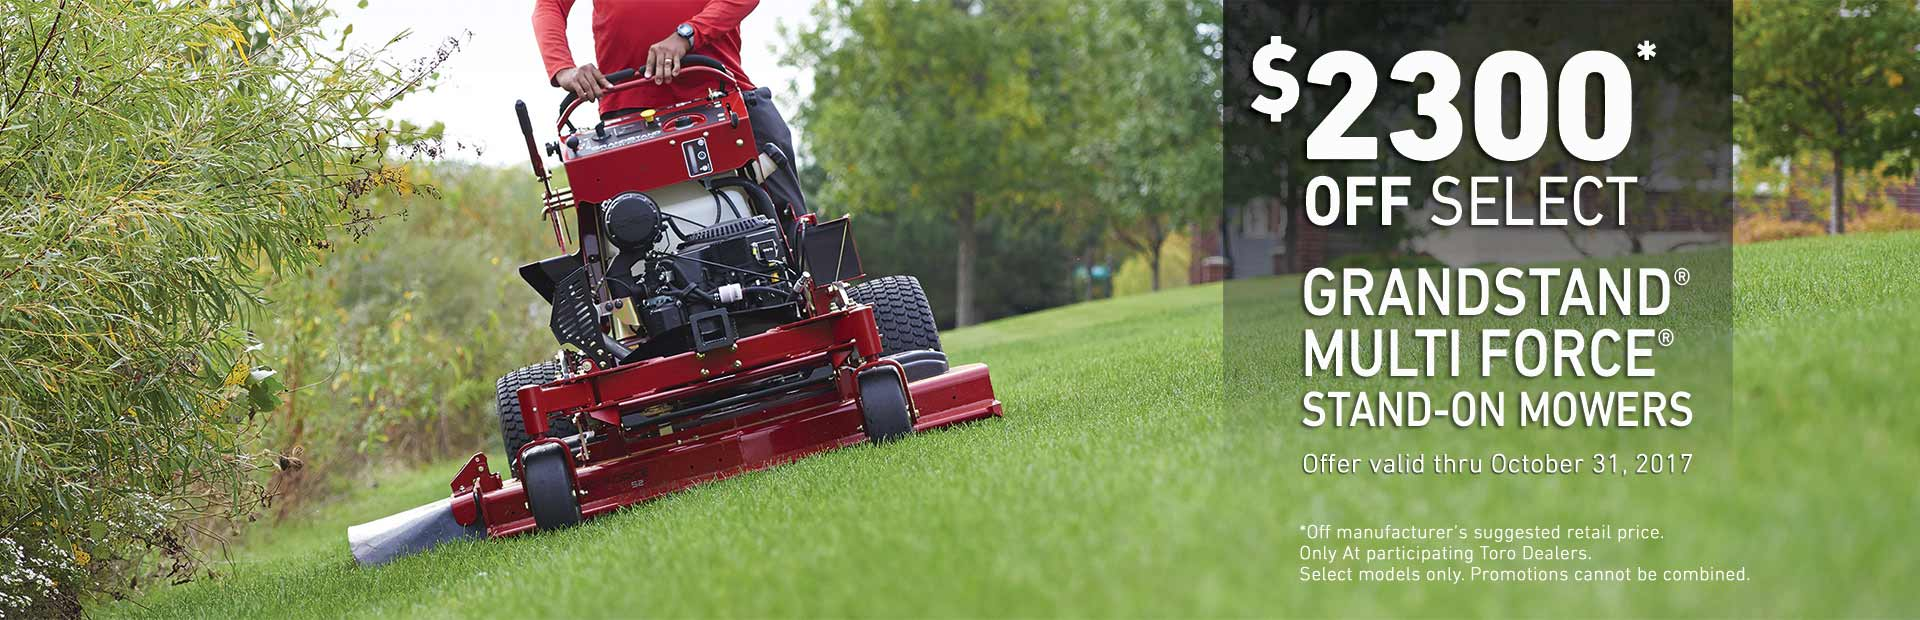 Toro: $2300 Off Select GrandStand MULTI FORCE Mowers